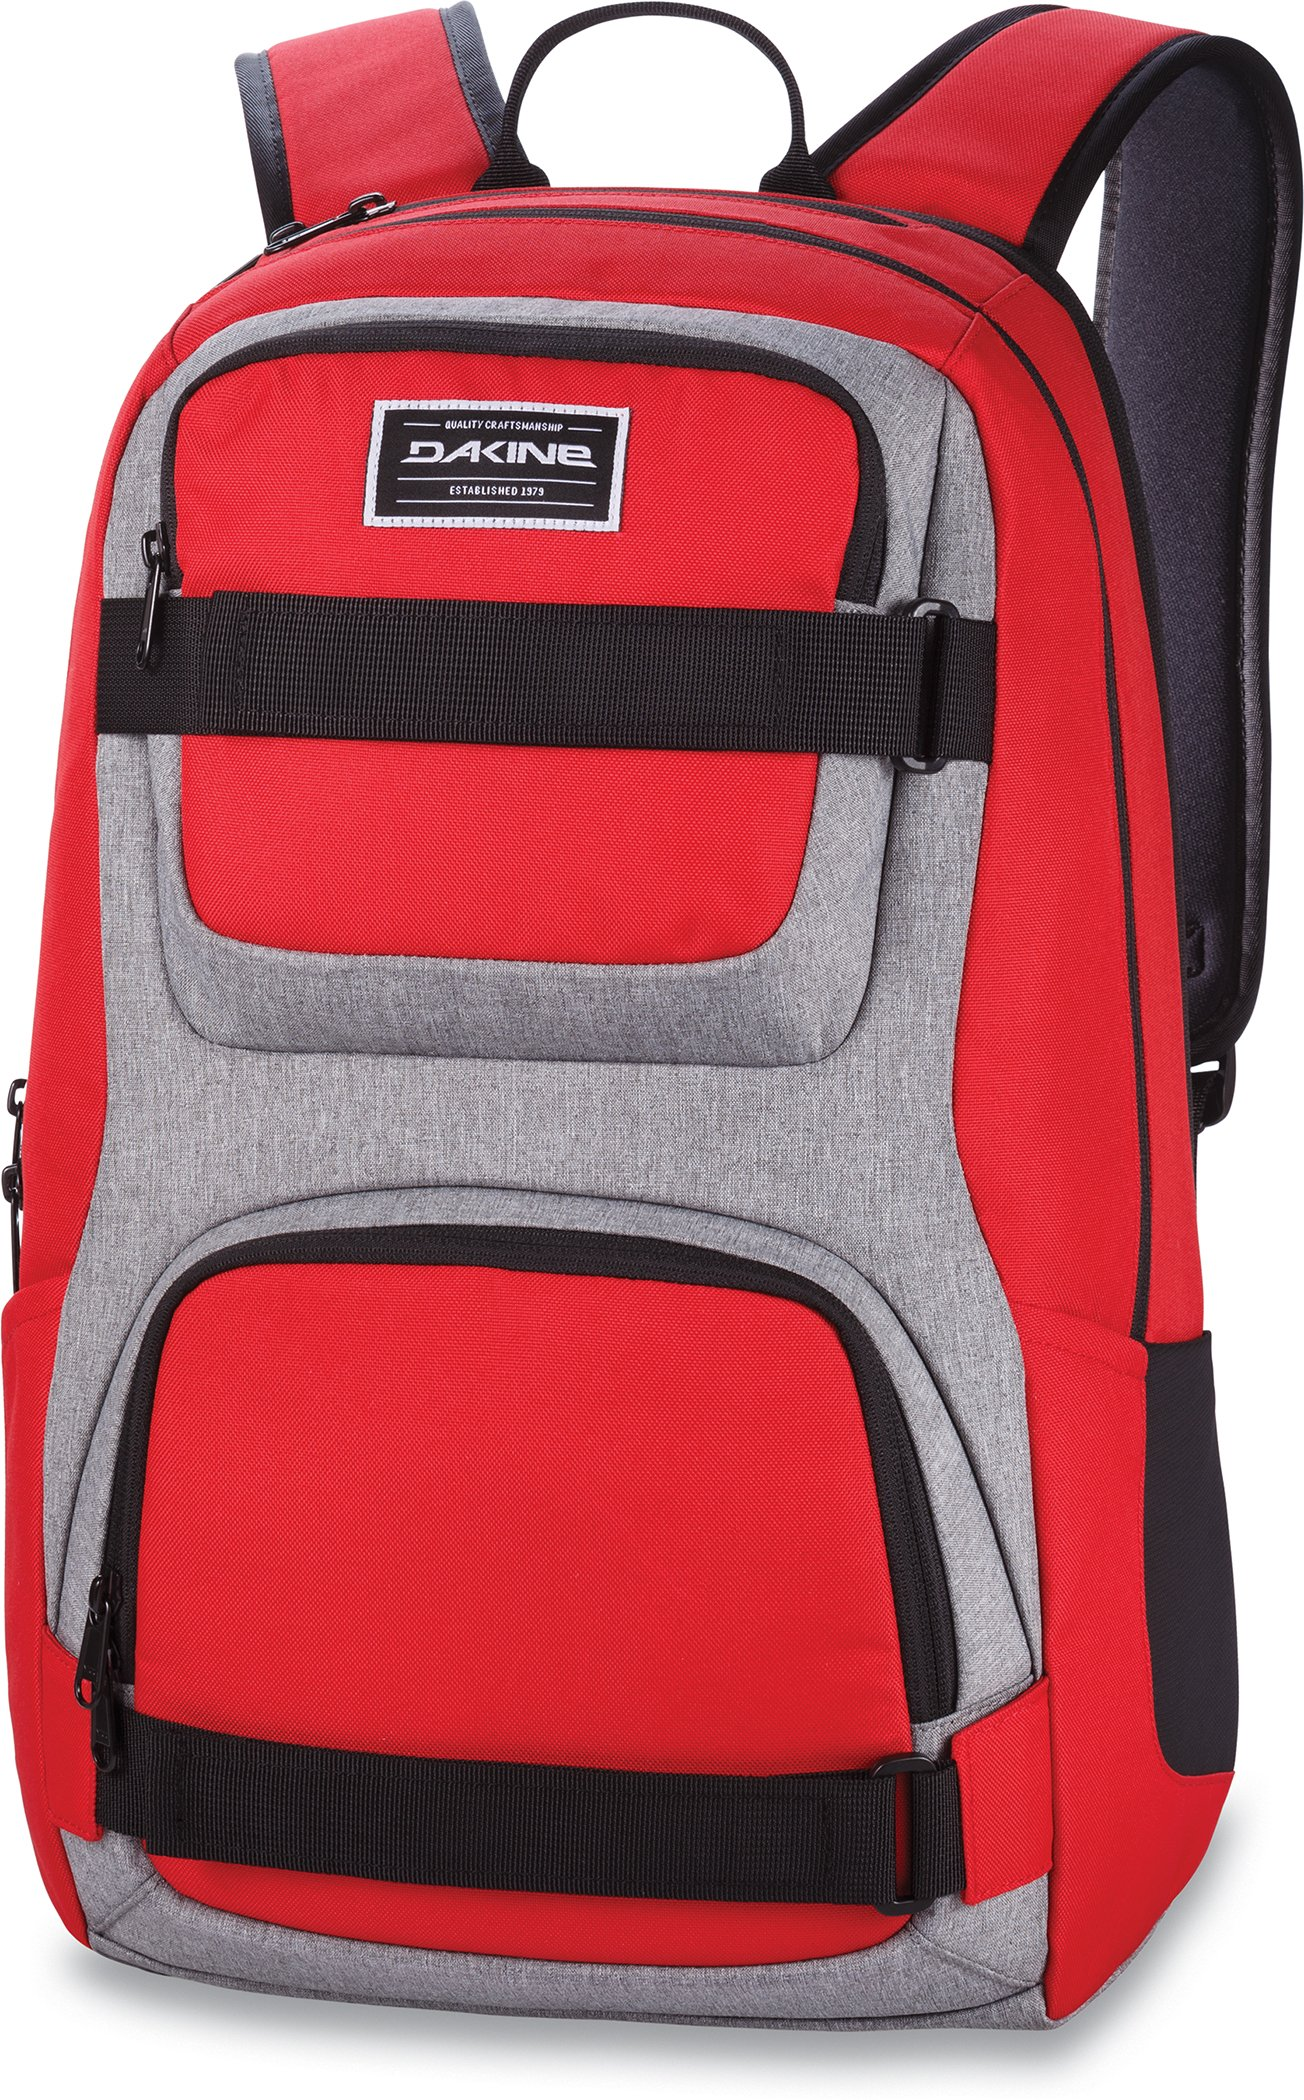 Dakine - Duel 26L Backpack - Padded Laptop & iPad Sleeve - Insulated Cooler Pocket - Mesh Side Pockets - 19'' x 12'' x 9'' (Red) by Dakine